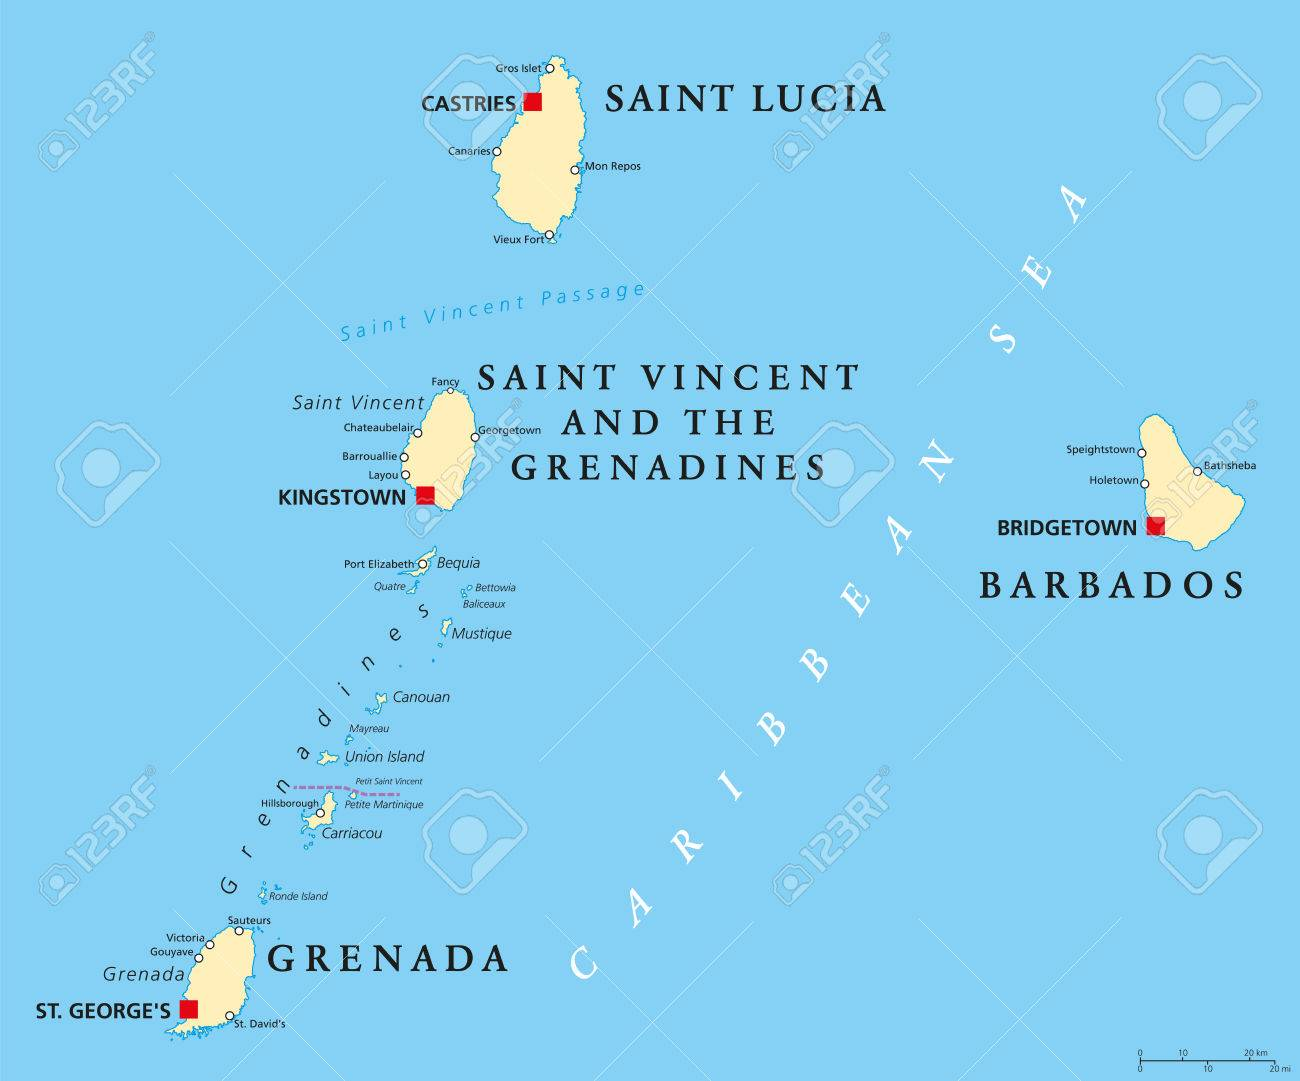 Barbados Grenada Saint Lucia Saint Vincent And The Grenadines